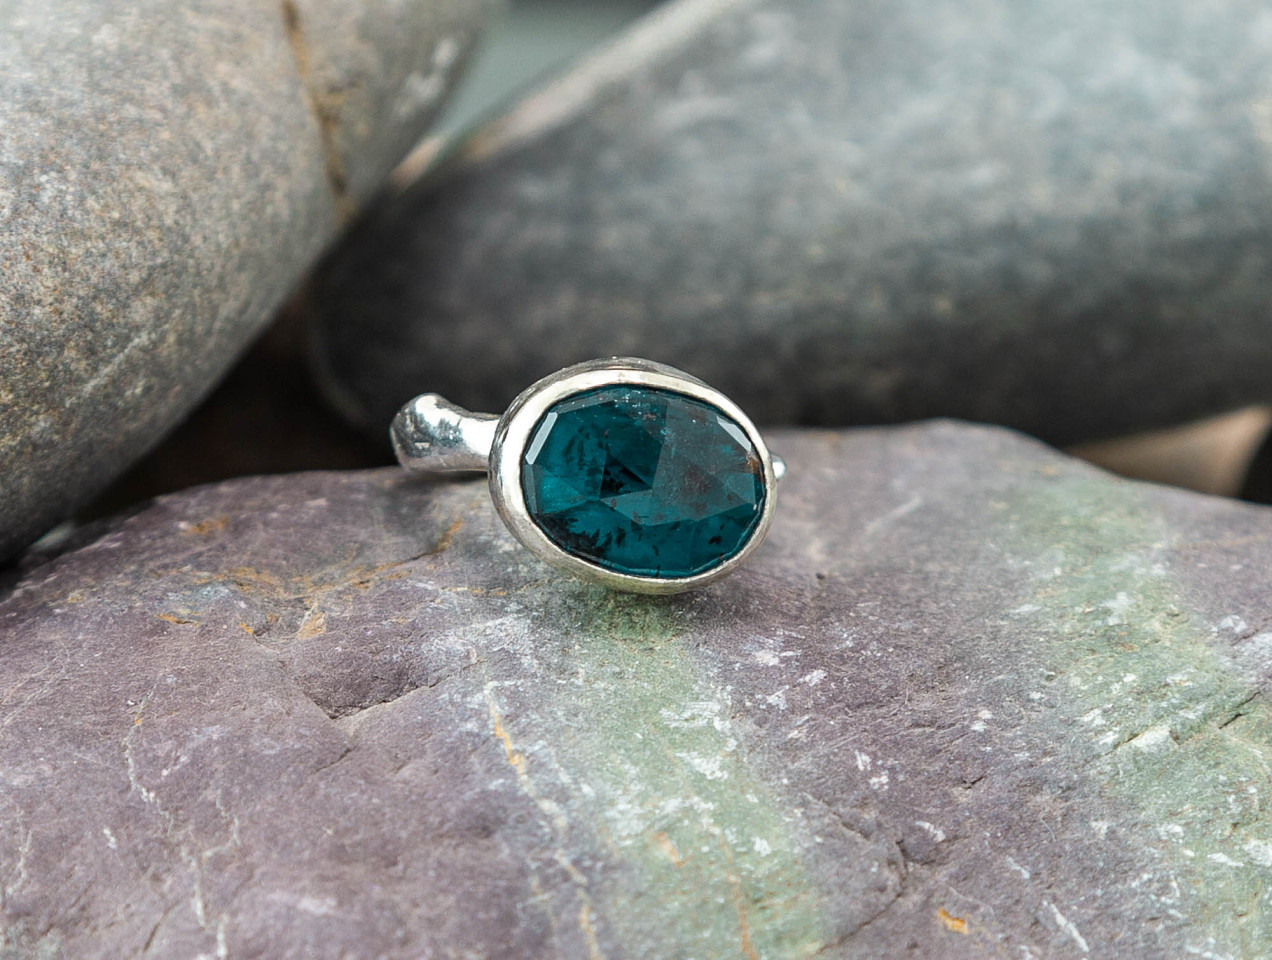 Marsha Drew, ROCKPOOL RUSTIC RING WITH XLARGE OVAL FACETED MOSS KYANITE